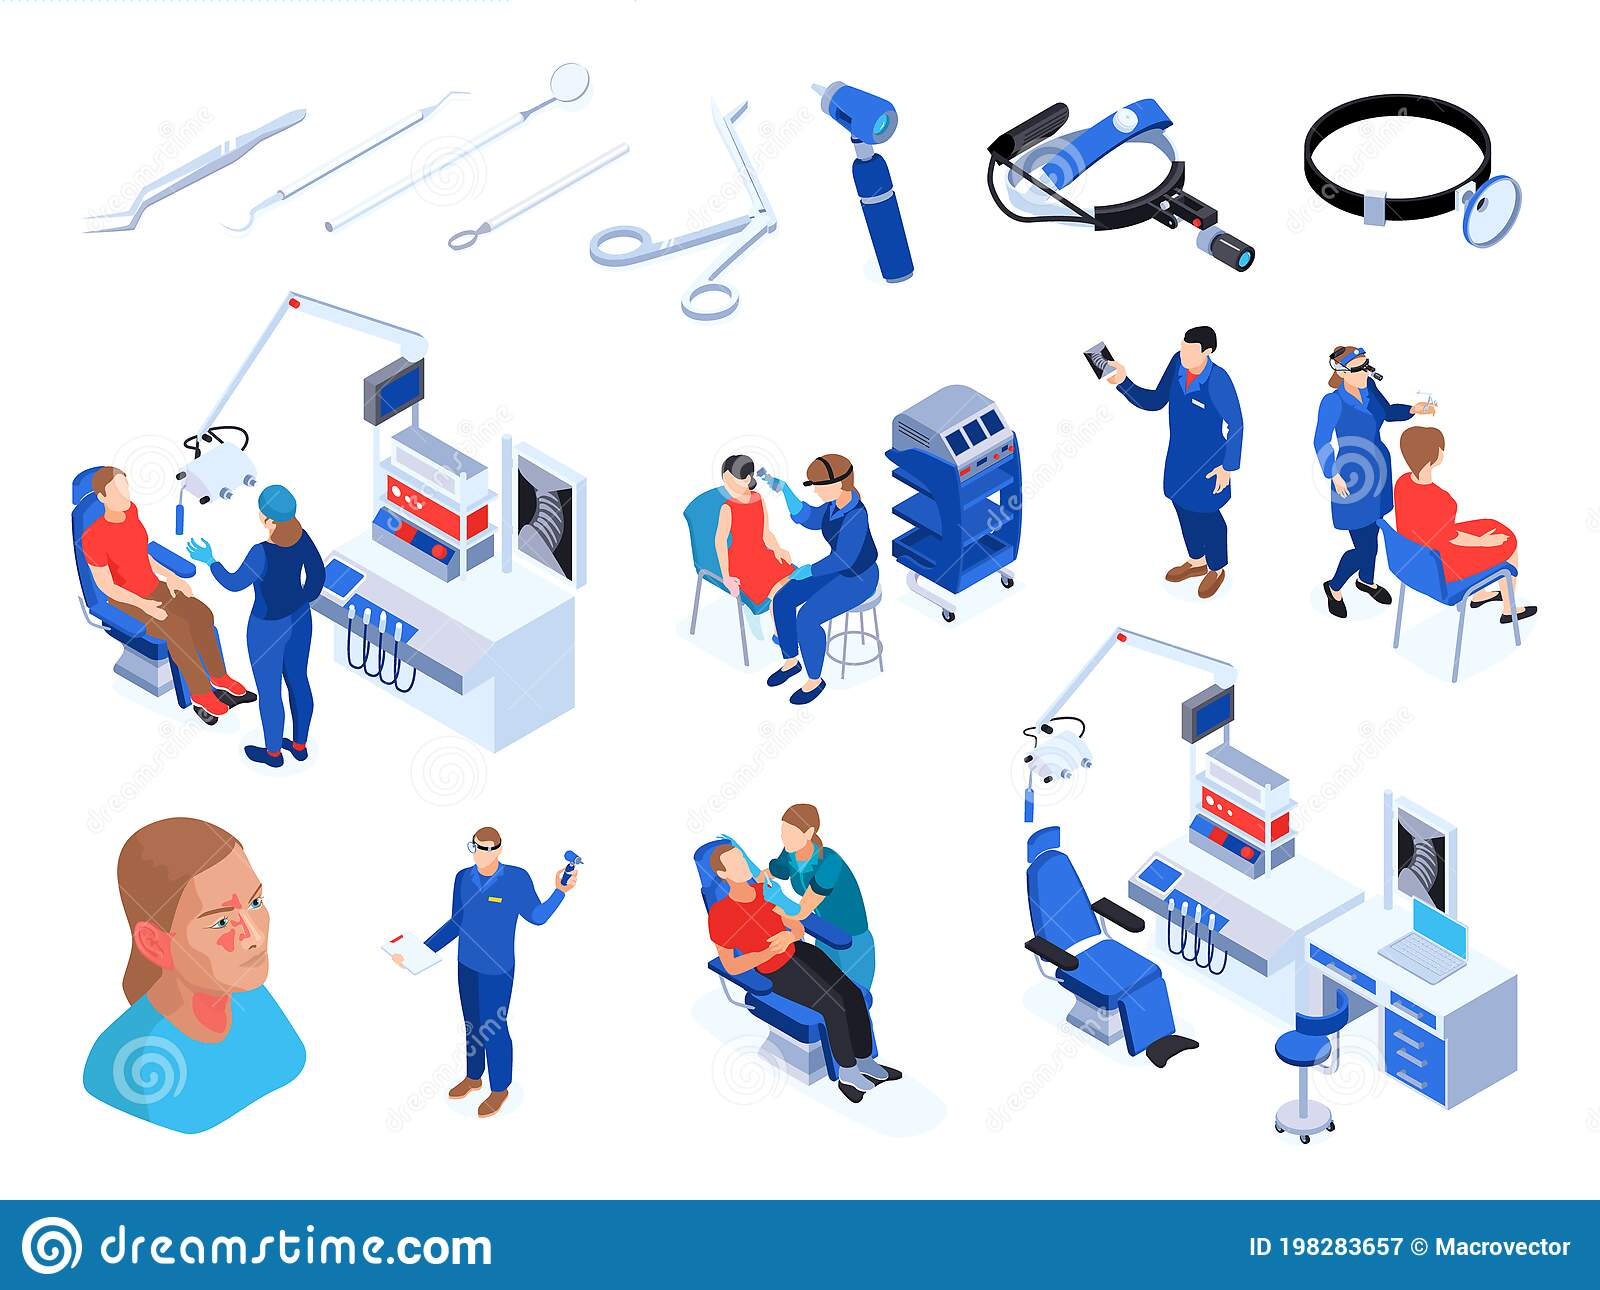 Ent Specialist Icon Set Stock Vector Illustration Of Issue 198283657